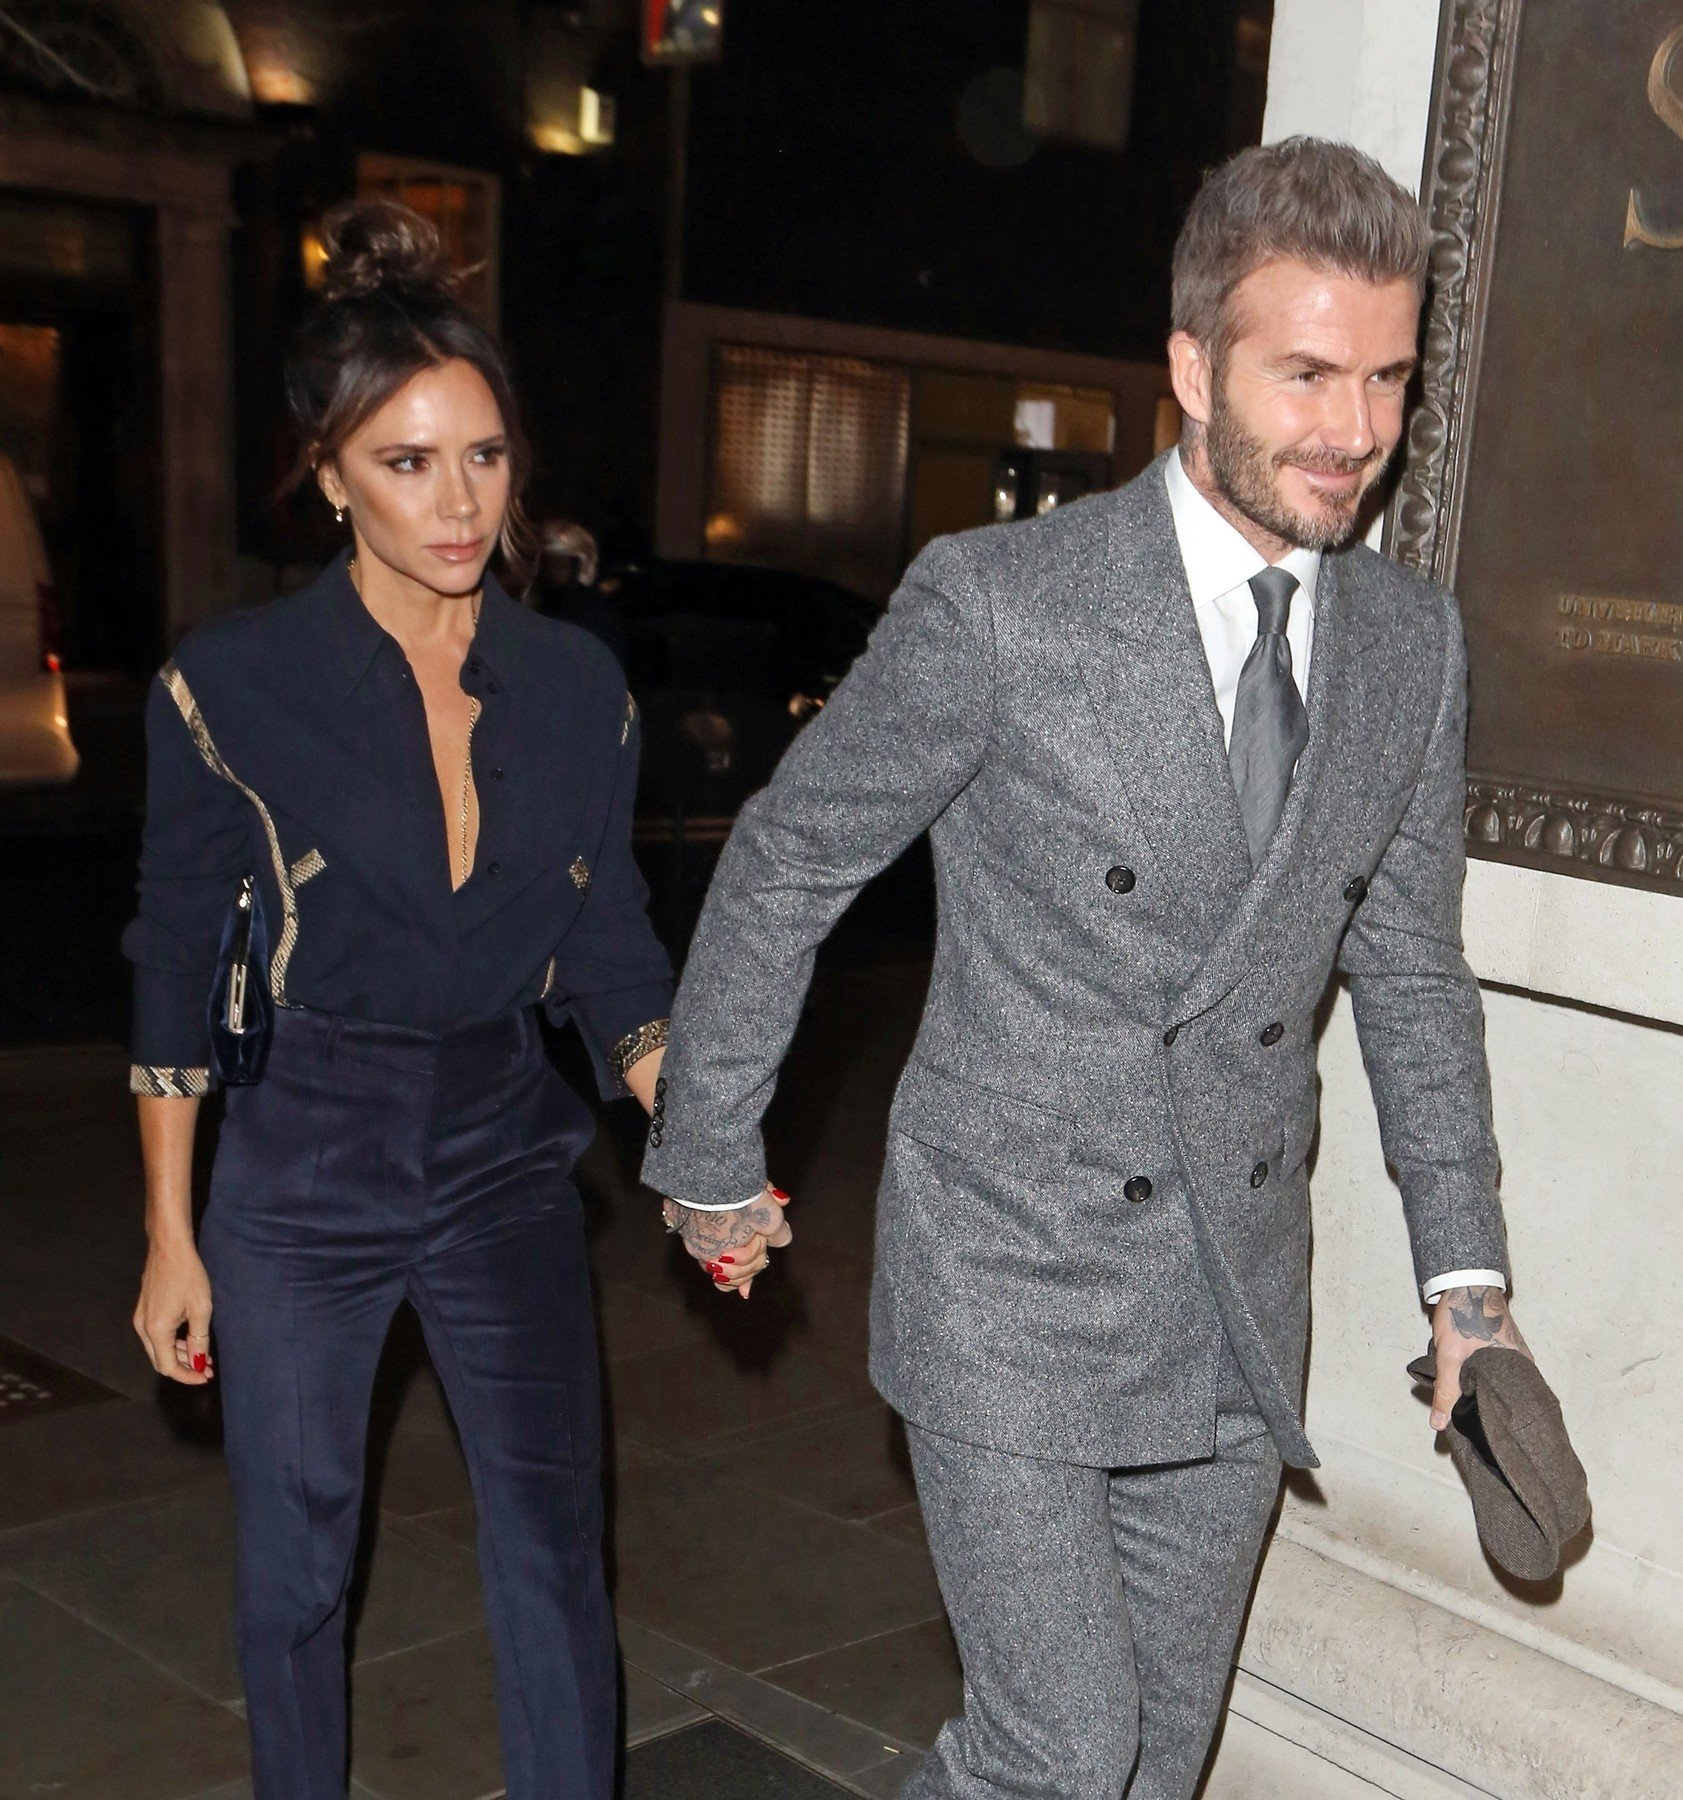 BGUK_1450950 - London, UNITED KINGDOM  - Victoria and David Beckham seen arriving at The Mens GQ Dinner to celebrate London Fashion Week in London. Victoria and David were seen arriving hand in hand at Brasserie of Light restaurant in Selfridges.  Pictured: David Beckham, Victoria Beckham    *UK Clients - Pictures Containing Children Please Pixelate Face Prior To Publication*, Image: 405735194, License: Rights-managed, Restrictions: , Model Release: no, Credit line: Profimedia, Xposurephotos